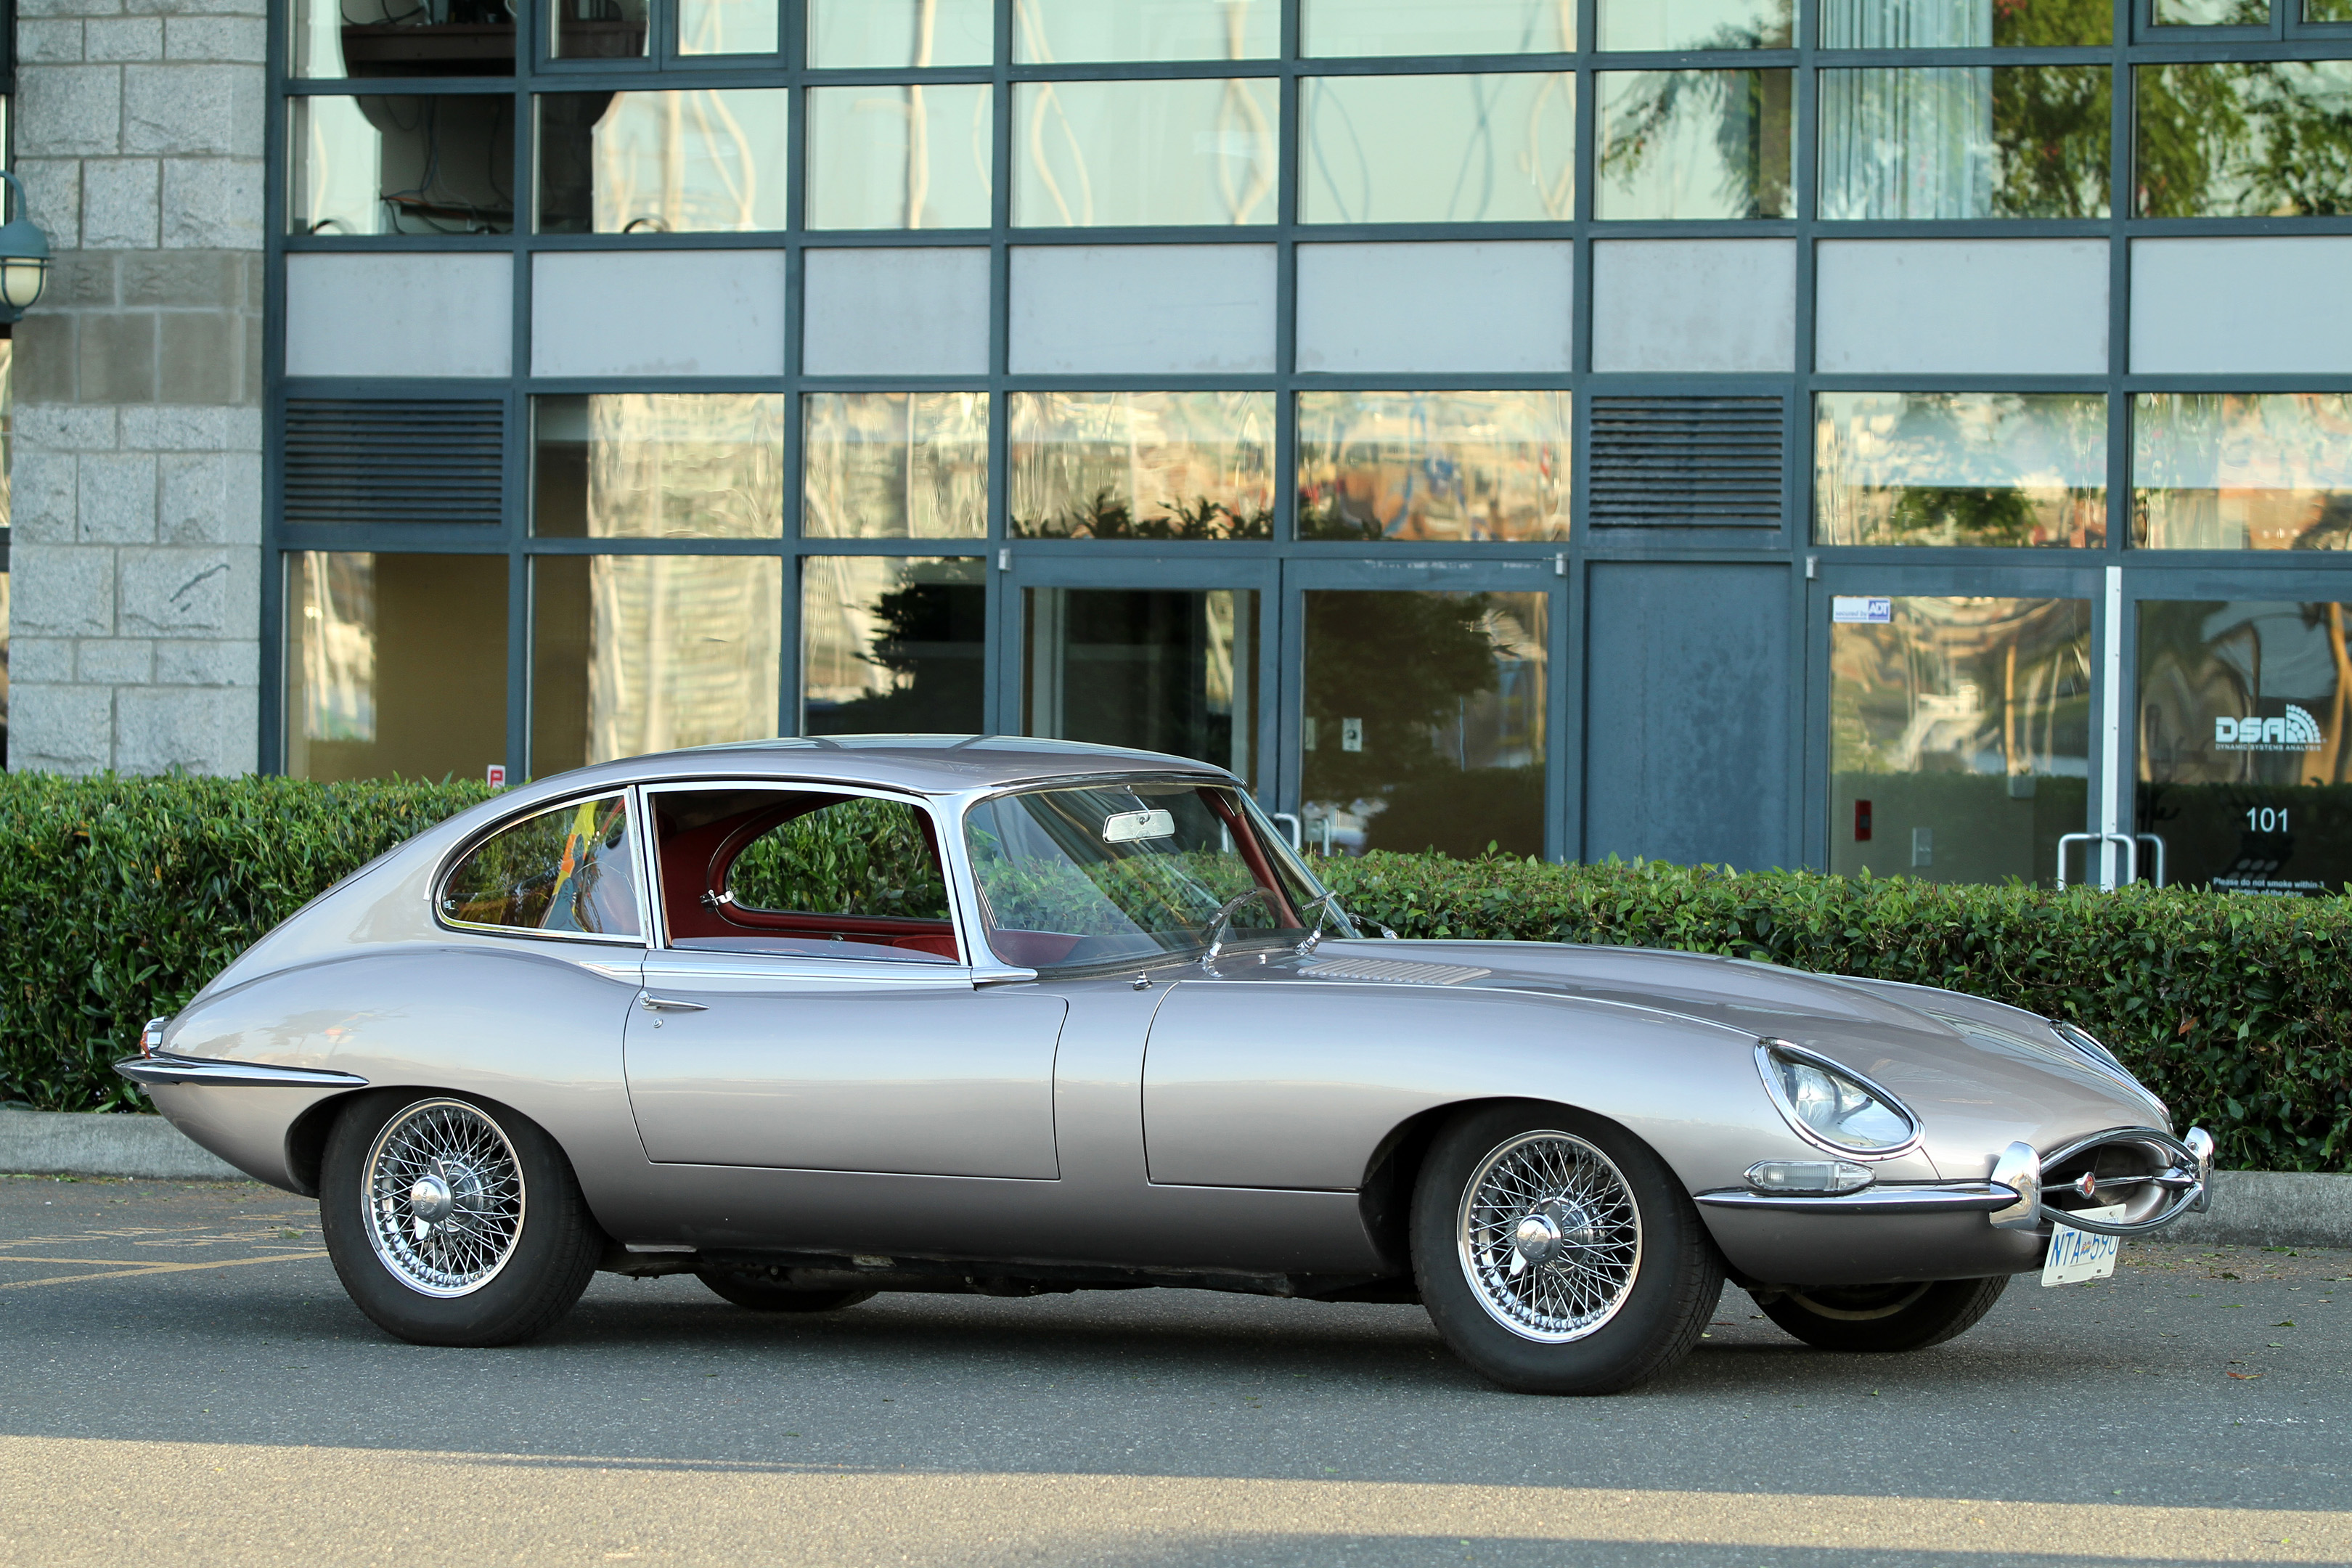 Nice  Desirable 4.2 Series 1 E Type With 4 Speed Manual  Well Maintained With  Receipts For Suspension, Engine Brakes And Electrical Work.  Exhibits  82,950 Miles.